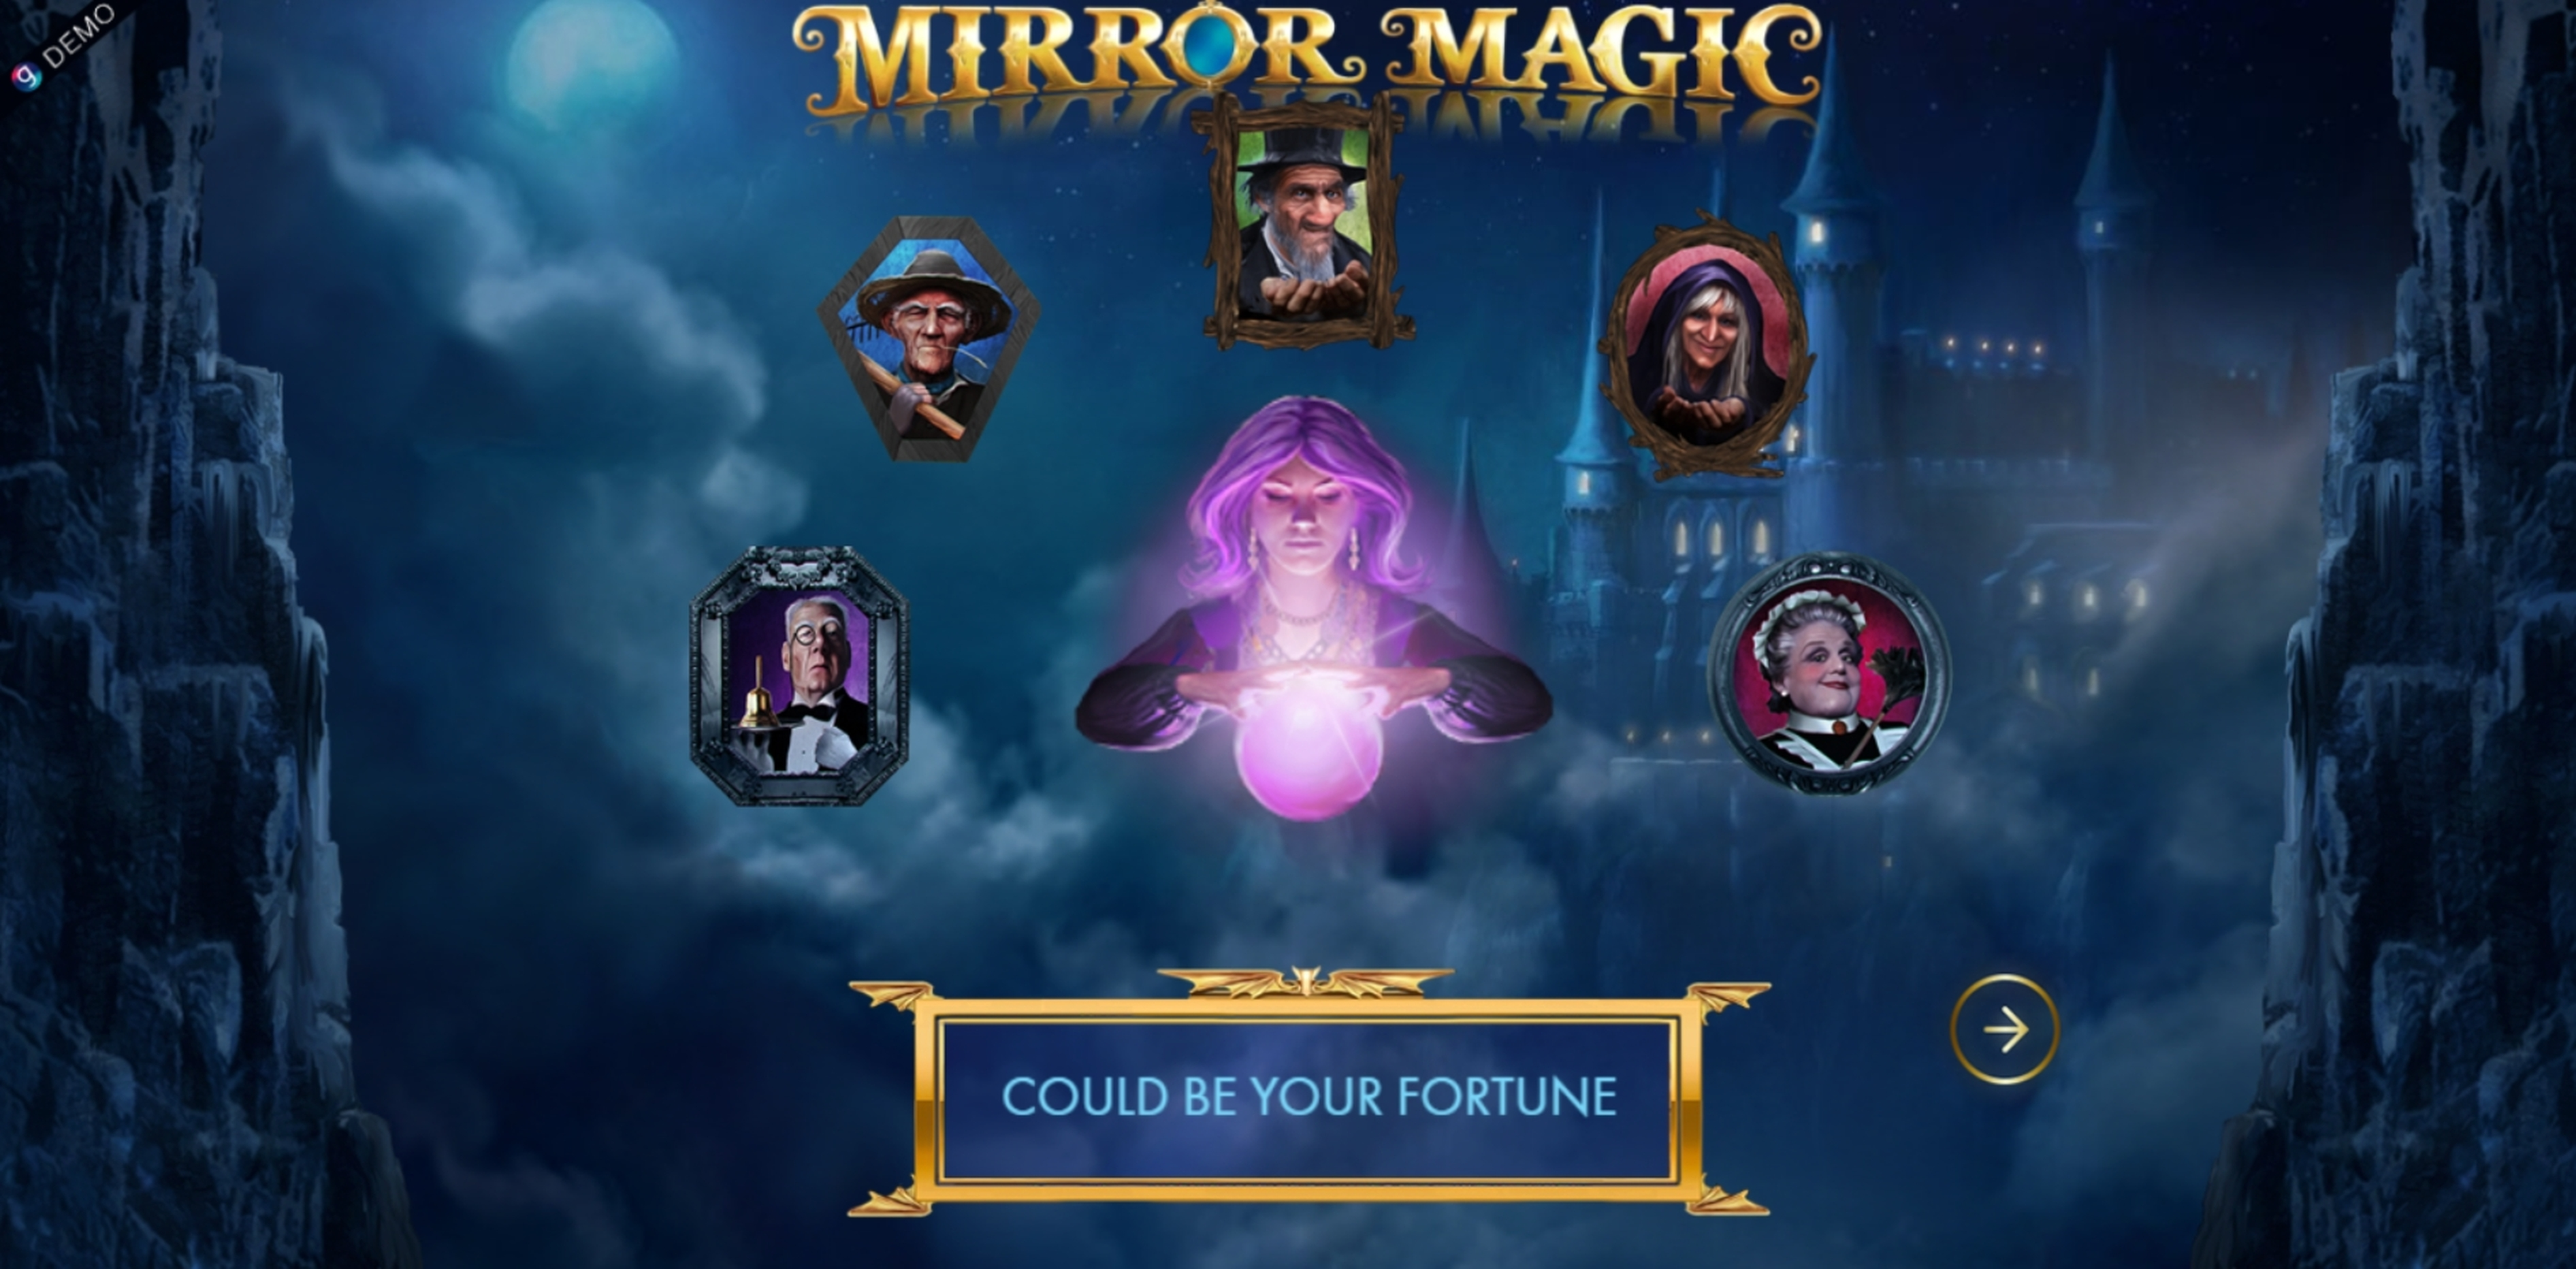 Play Mirror Magic Free Casino Slot Game by Genesis